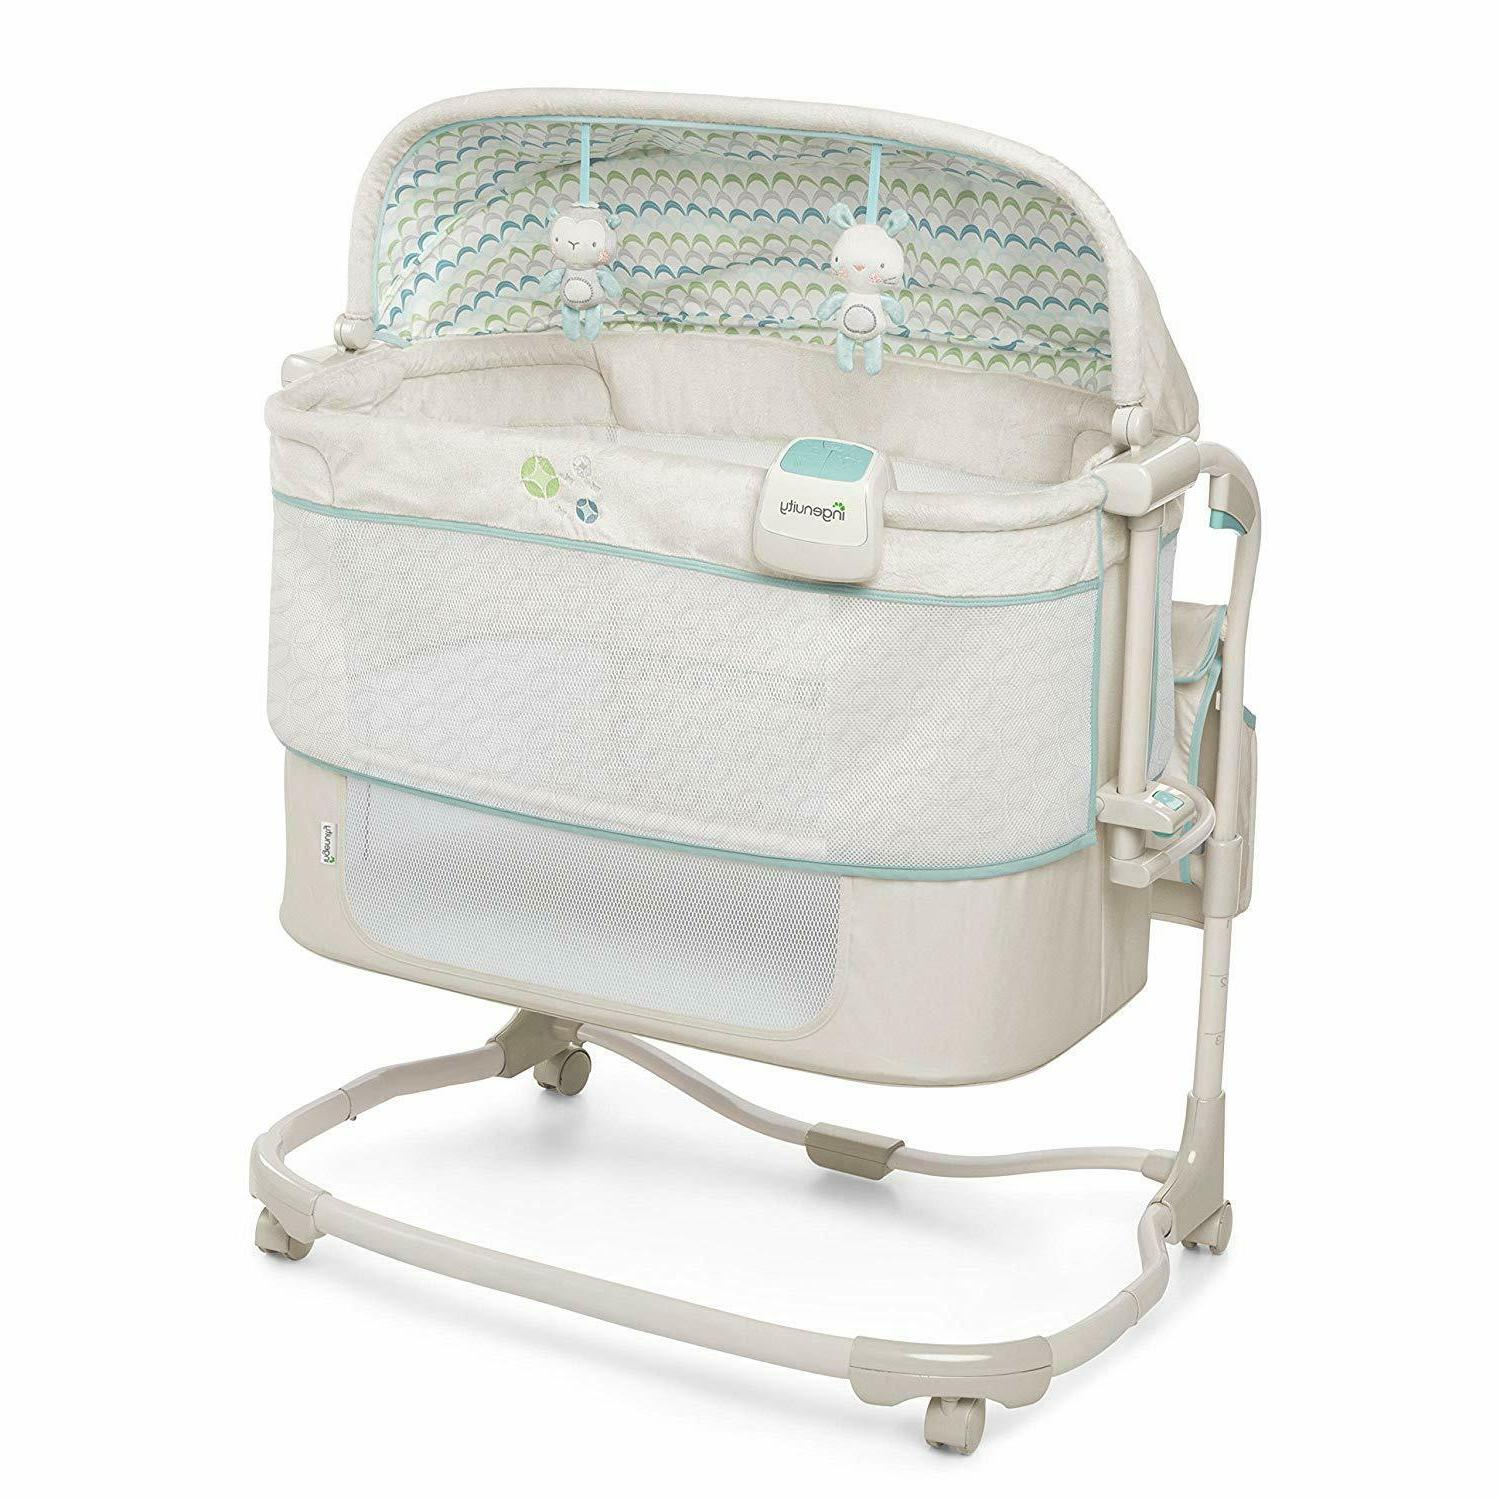 Baby Infant Cradle Crib Portable Nursery Furniture Bed Lullaby